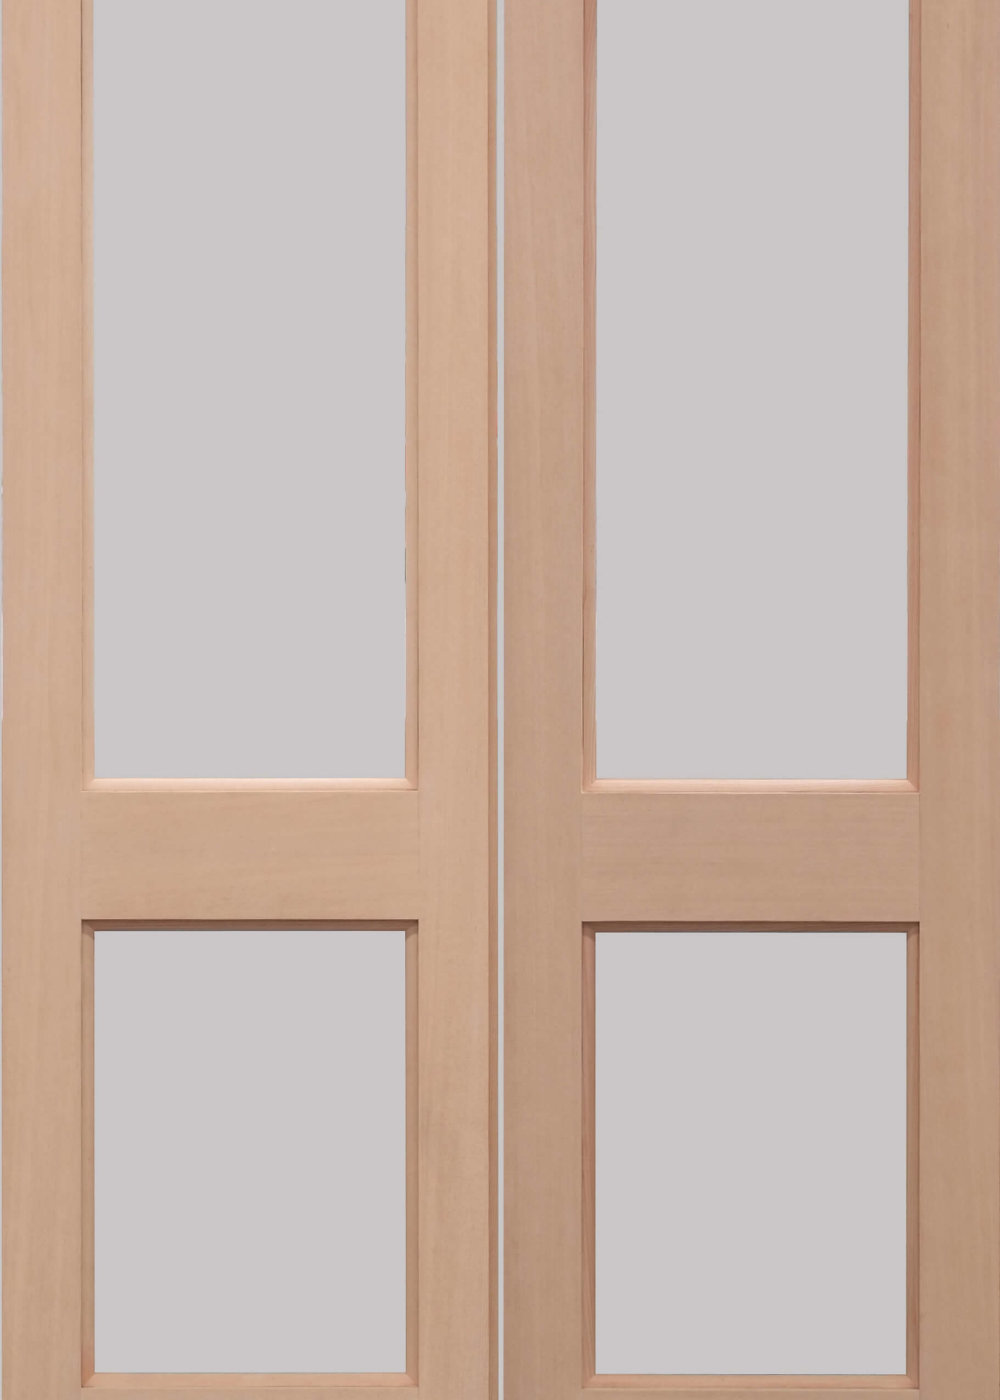 Hemlock 2xgg External Door Pair Trading Doors